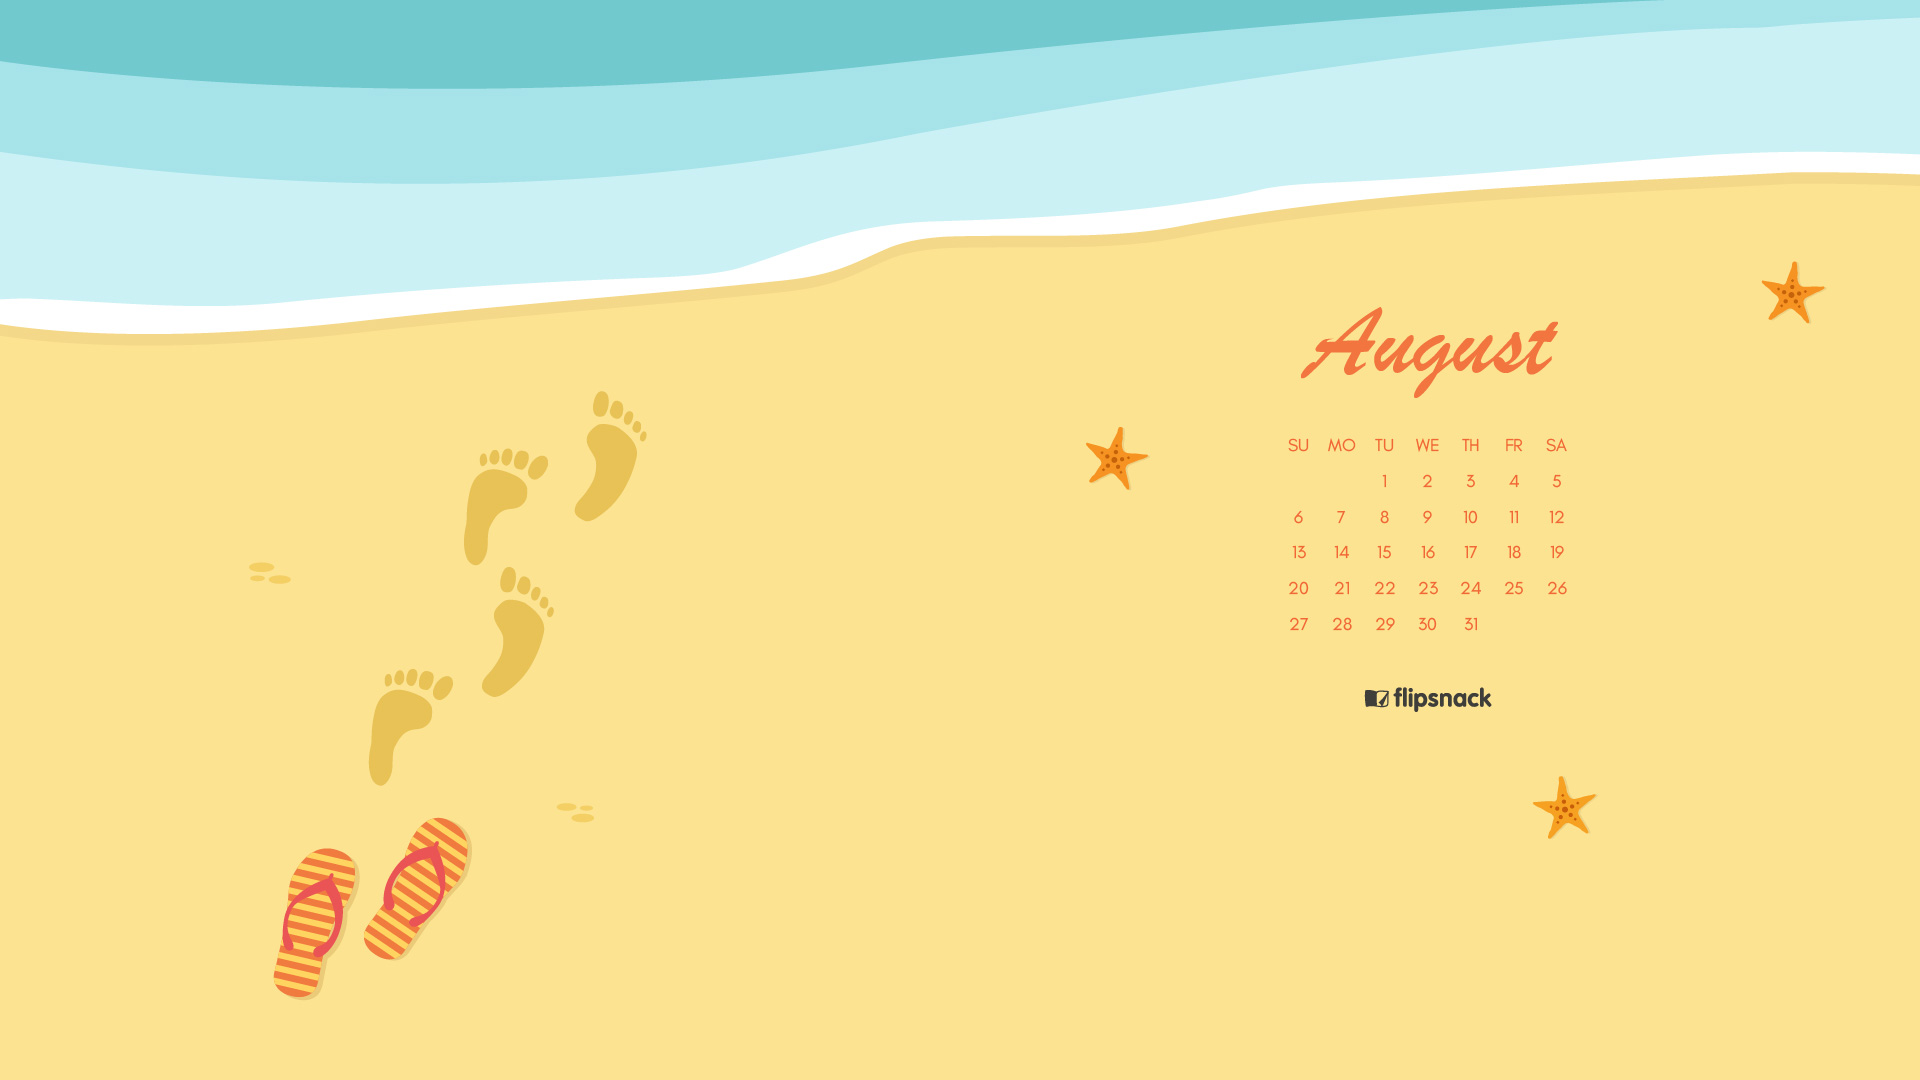 Calendar Wallpaper For Pc Desktop : August calendar wallpaper for desktop background